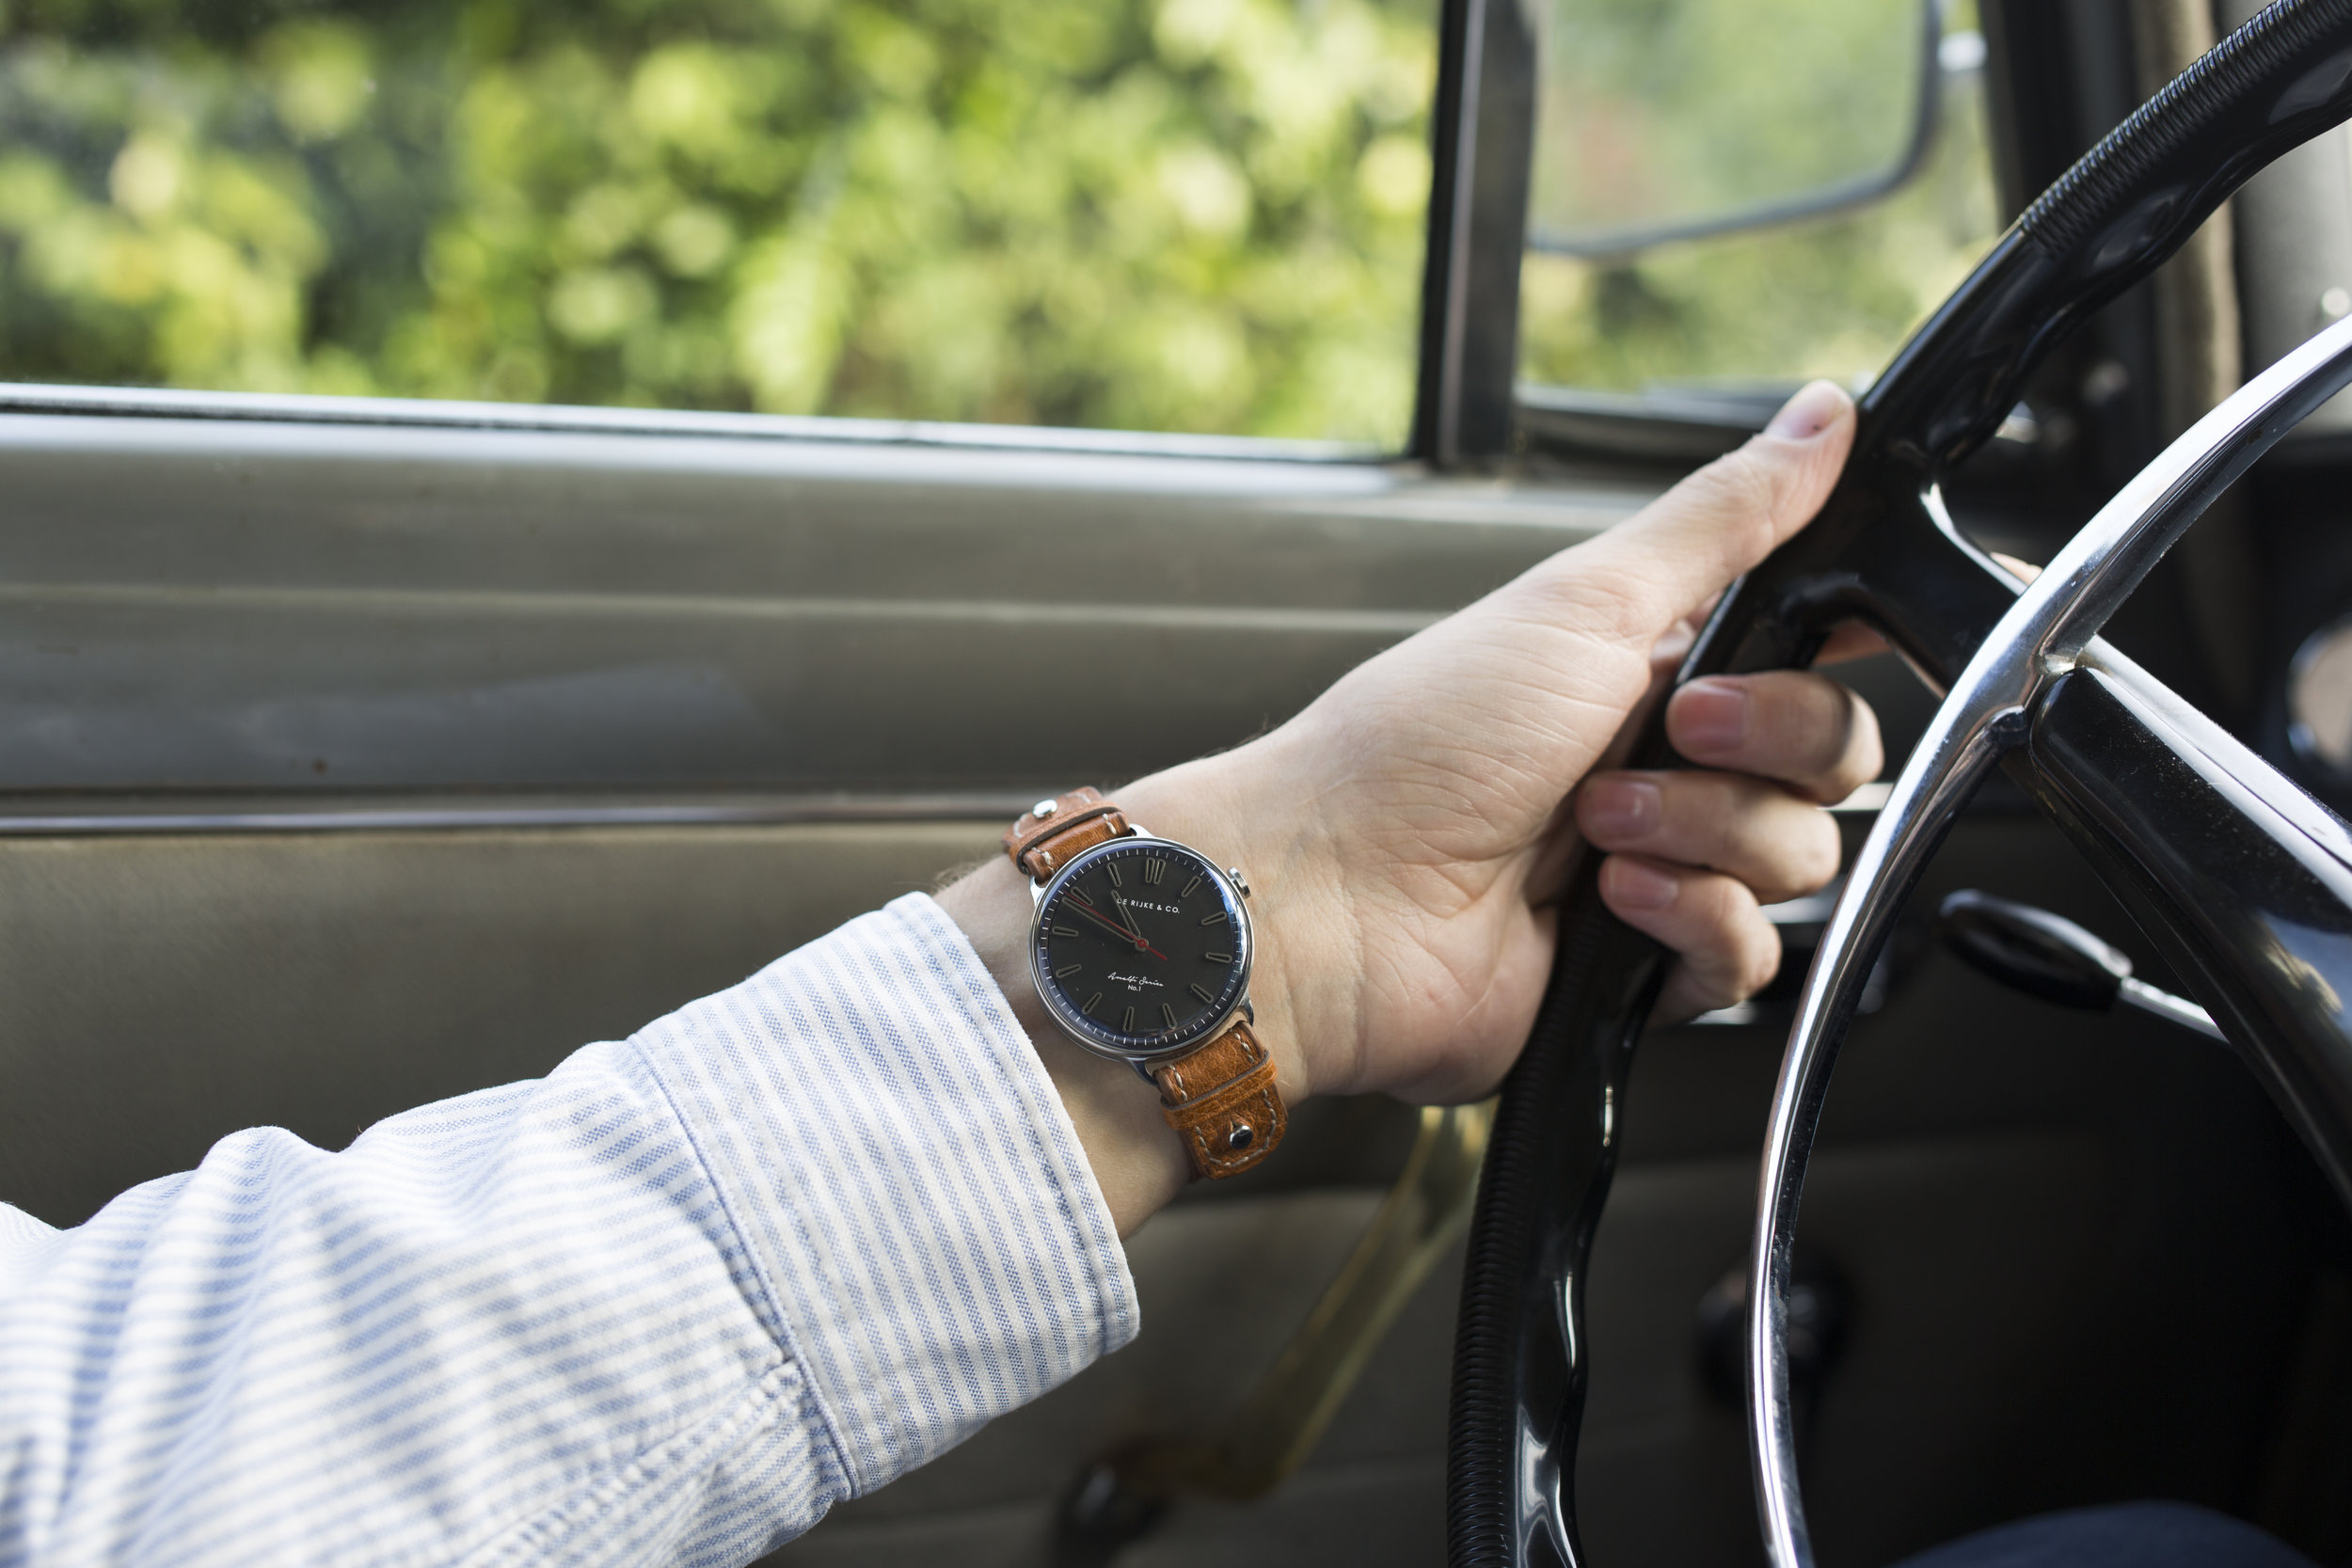 Driving Mode - The case rotated under an angle of 45 degrees and worn under the wrist for higher legibility while driving.